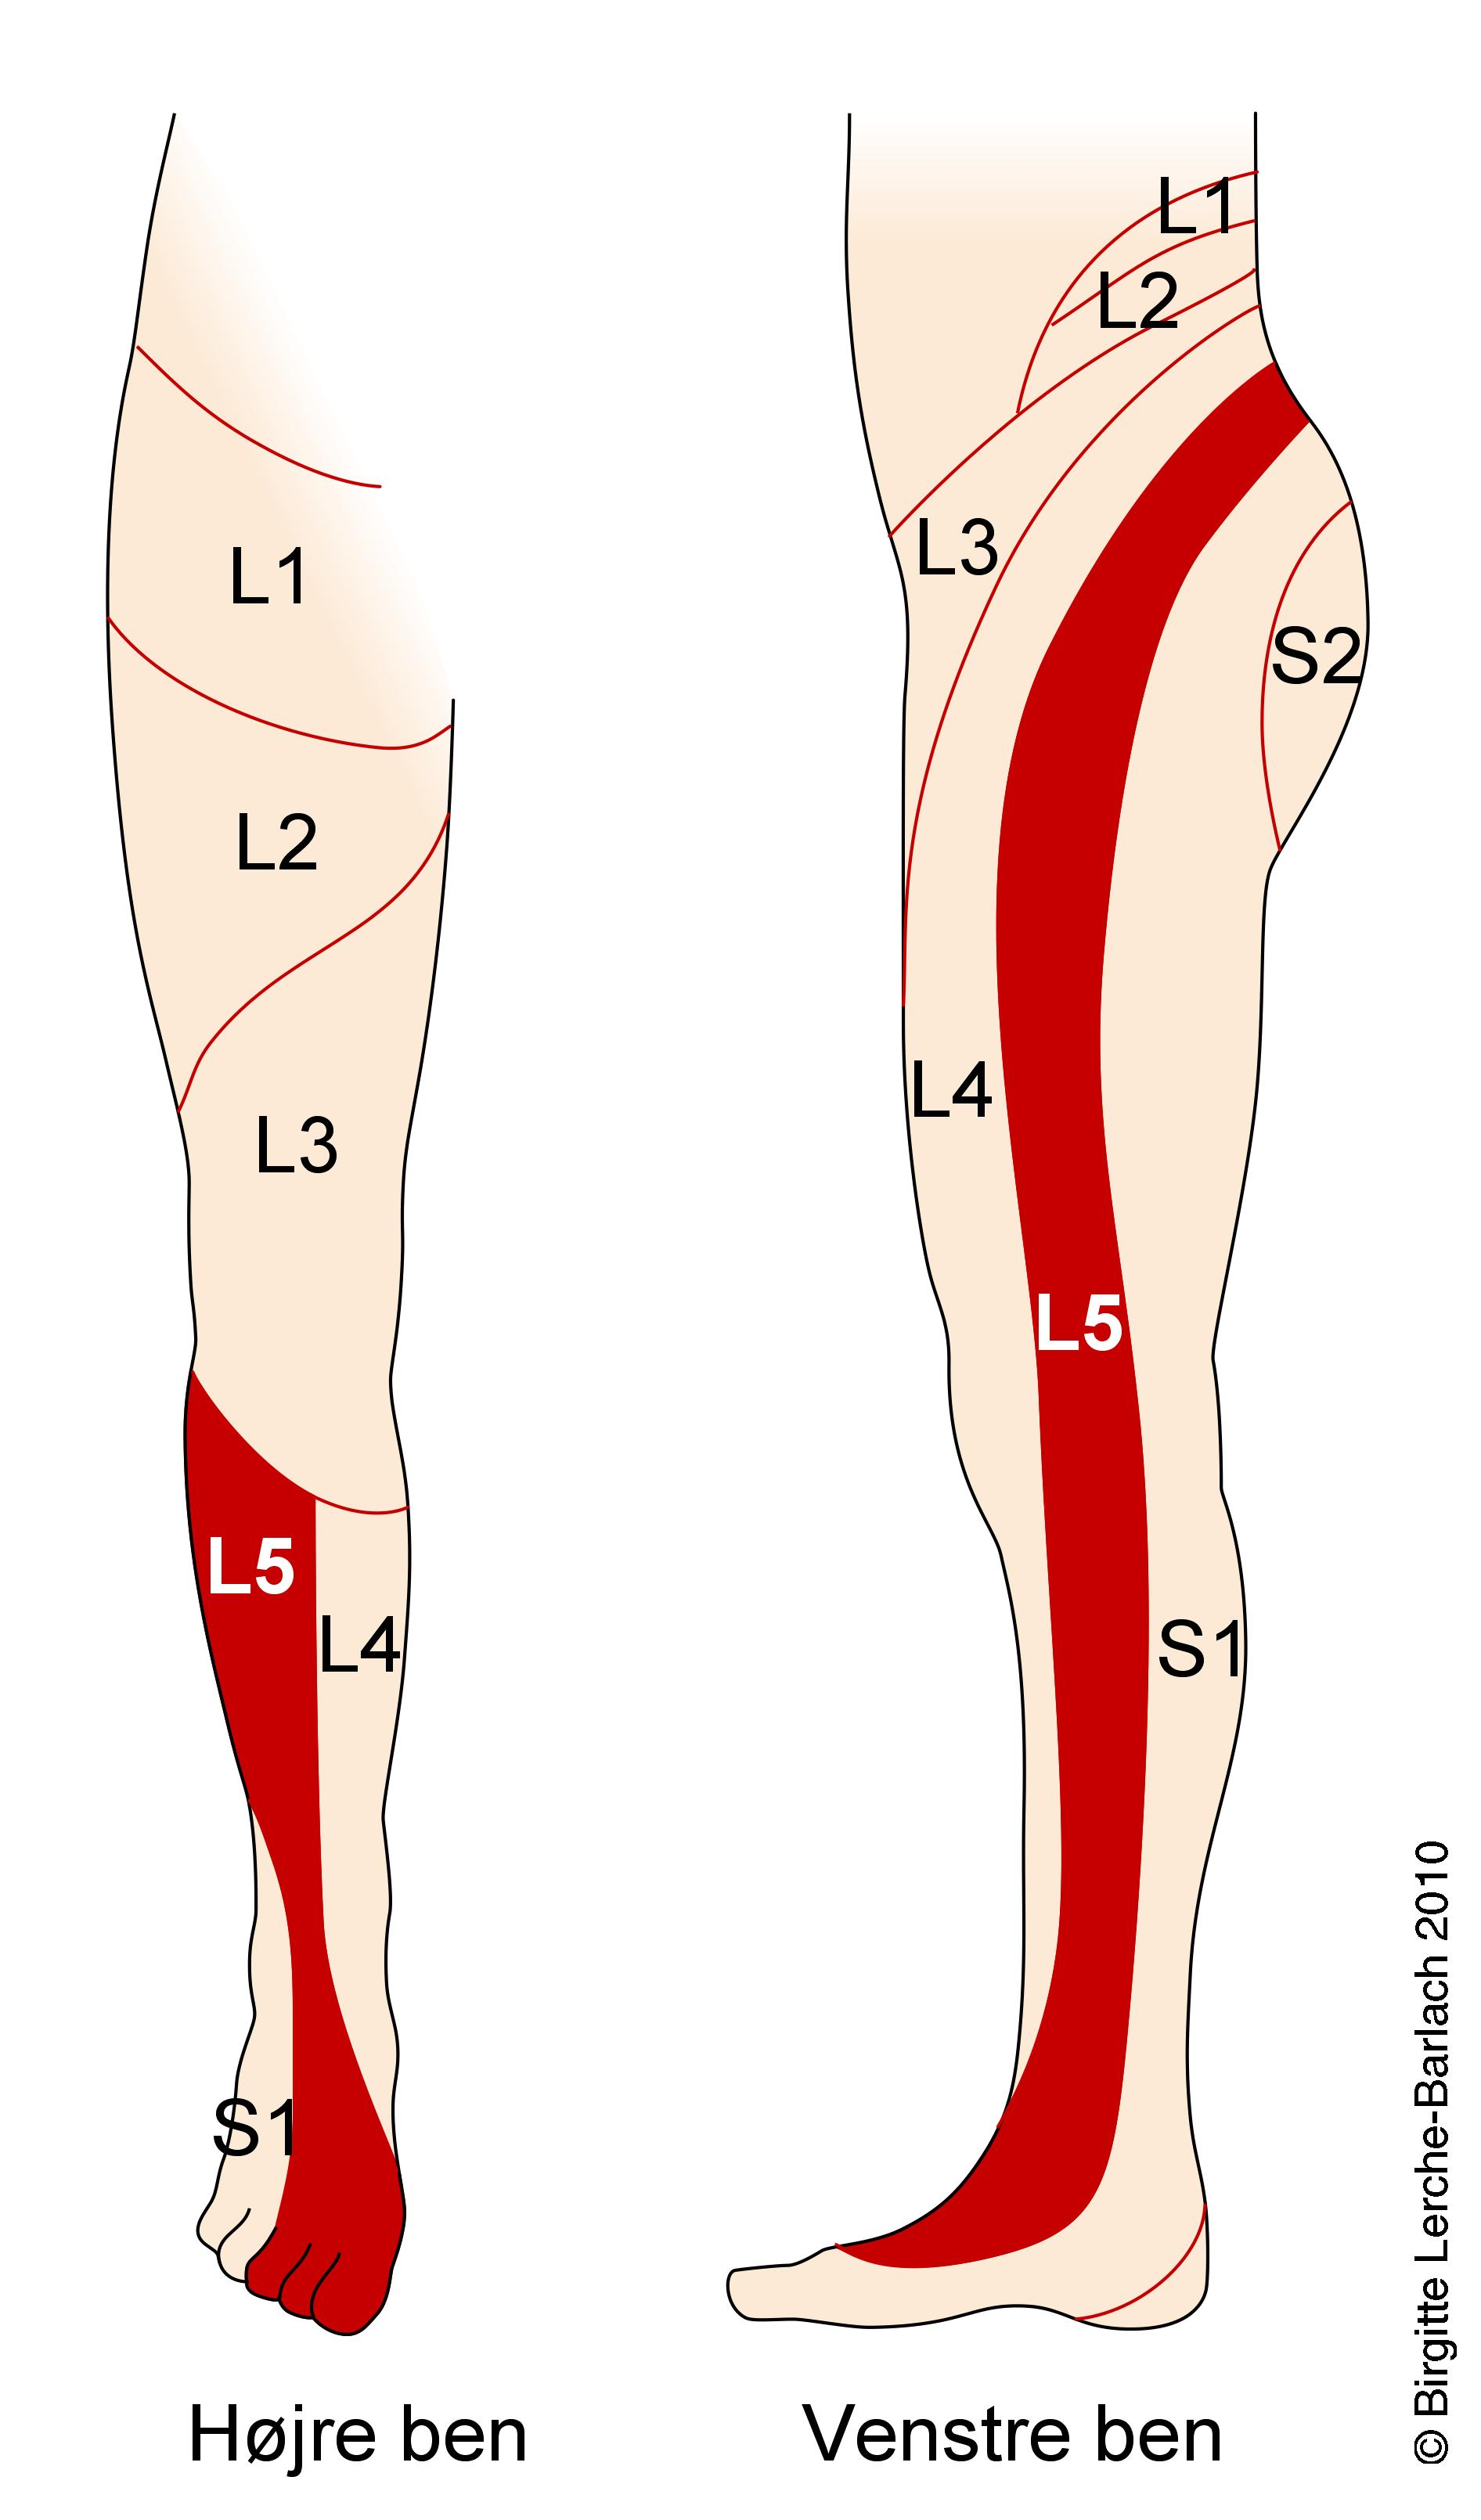 l4 nerve pain diagram vauxhall vectra wiring l2 spine location get free image about